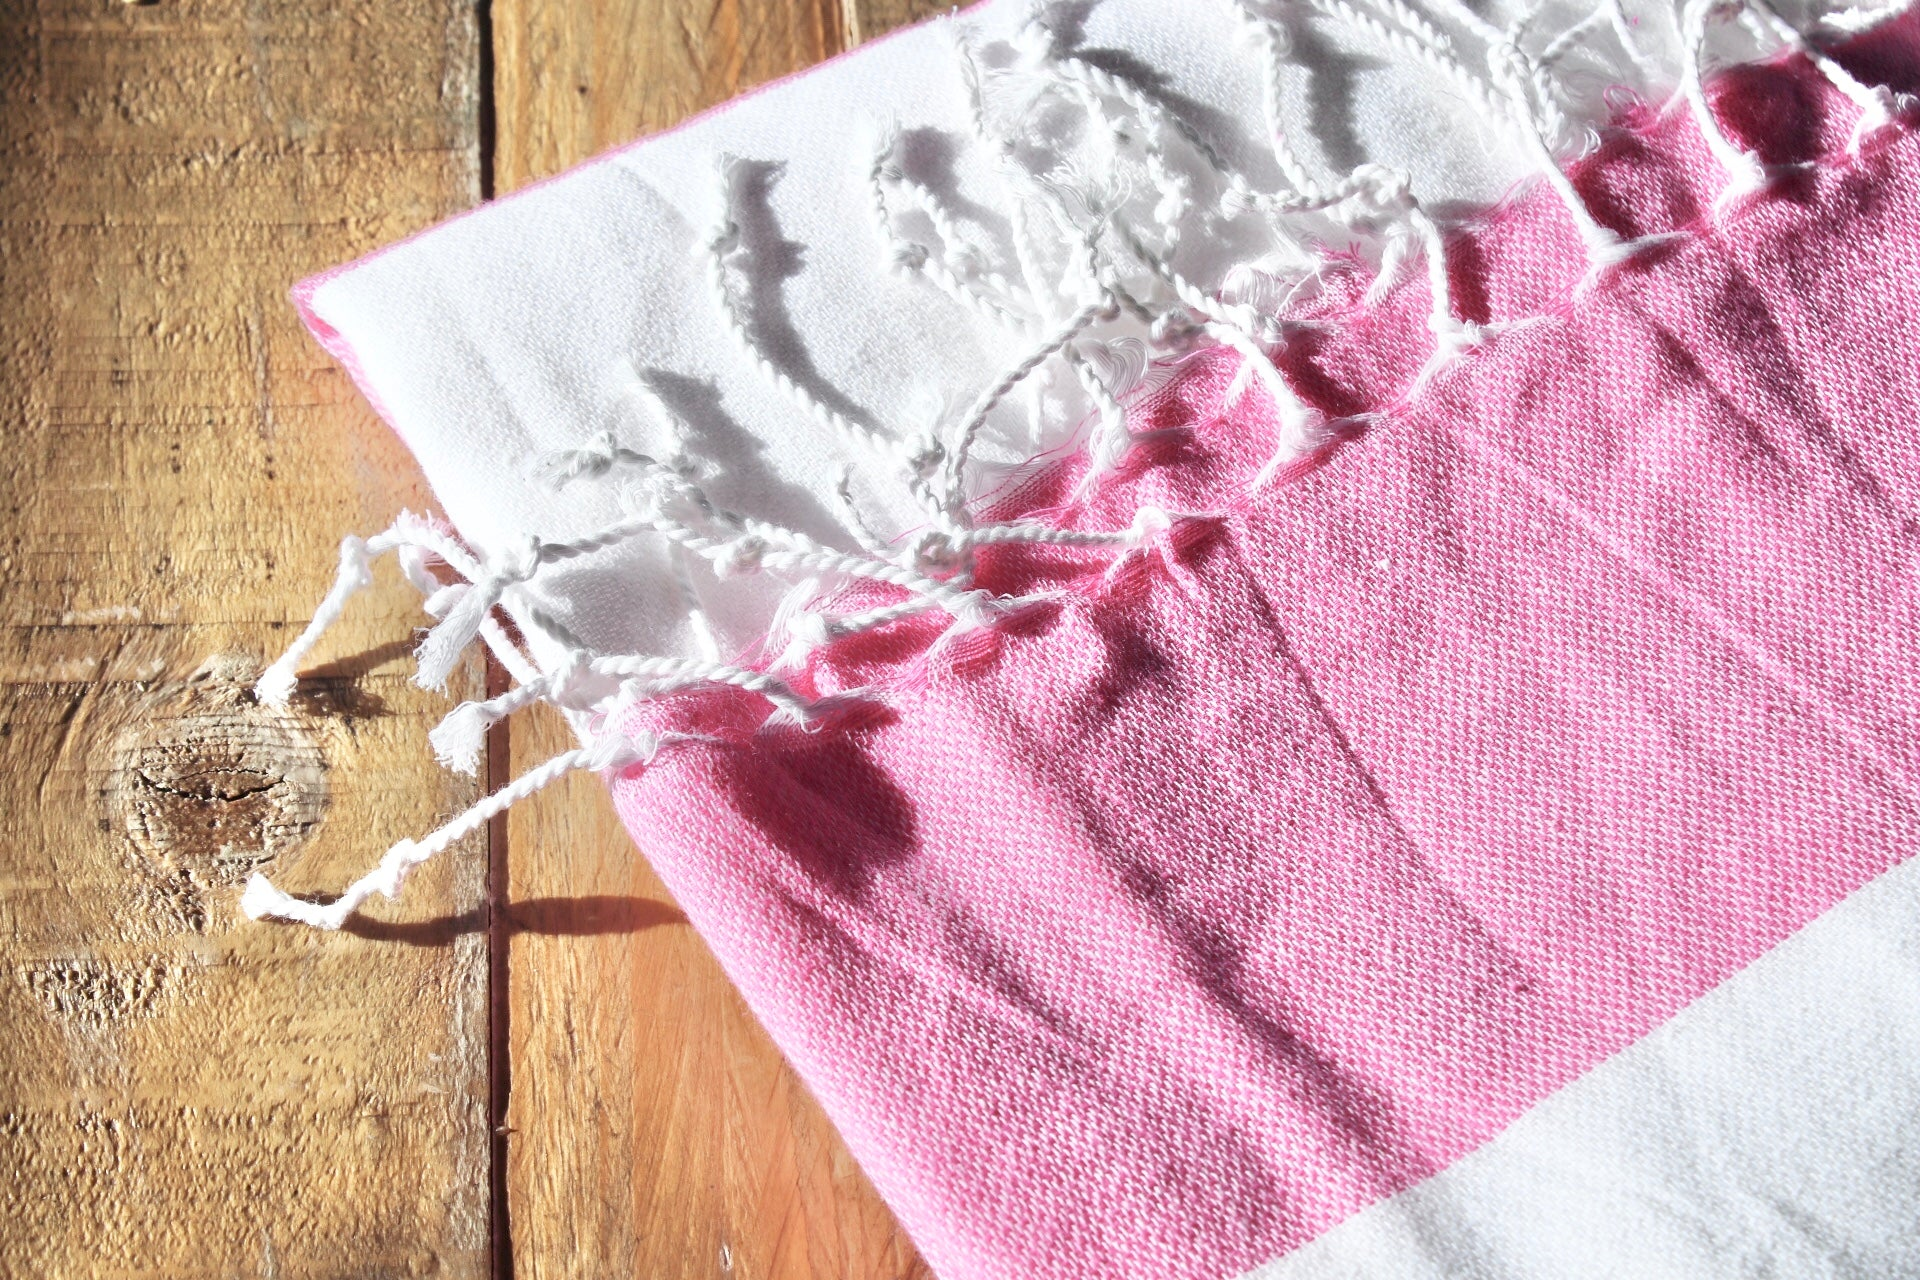 koton kulture toronto mississagua  turkish towel the classic in pink and white colours white stripped poncho with tassels for babies kids at the beach, bath or pool